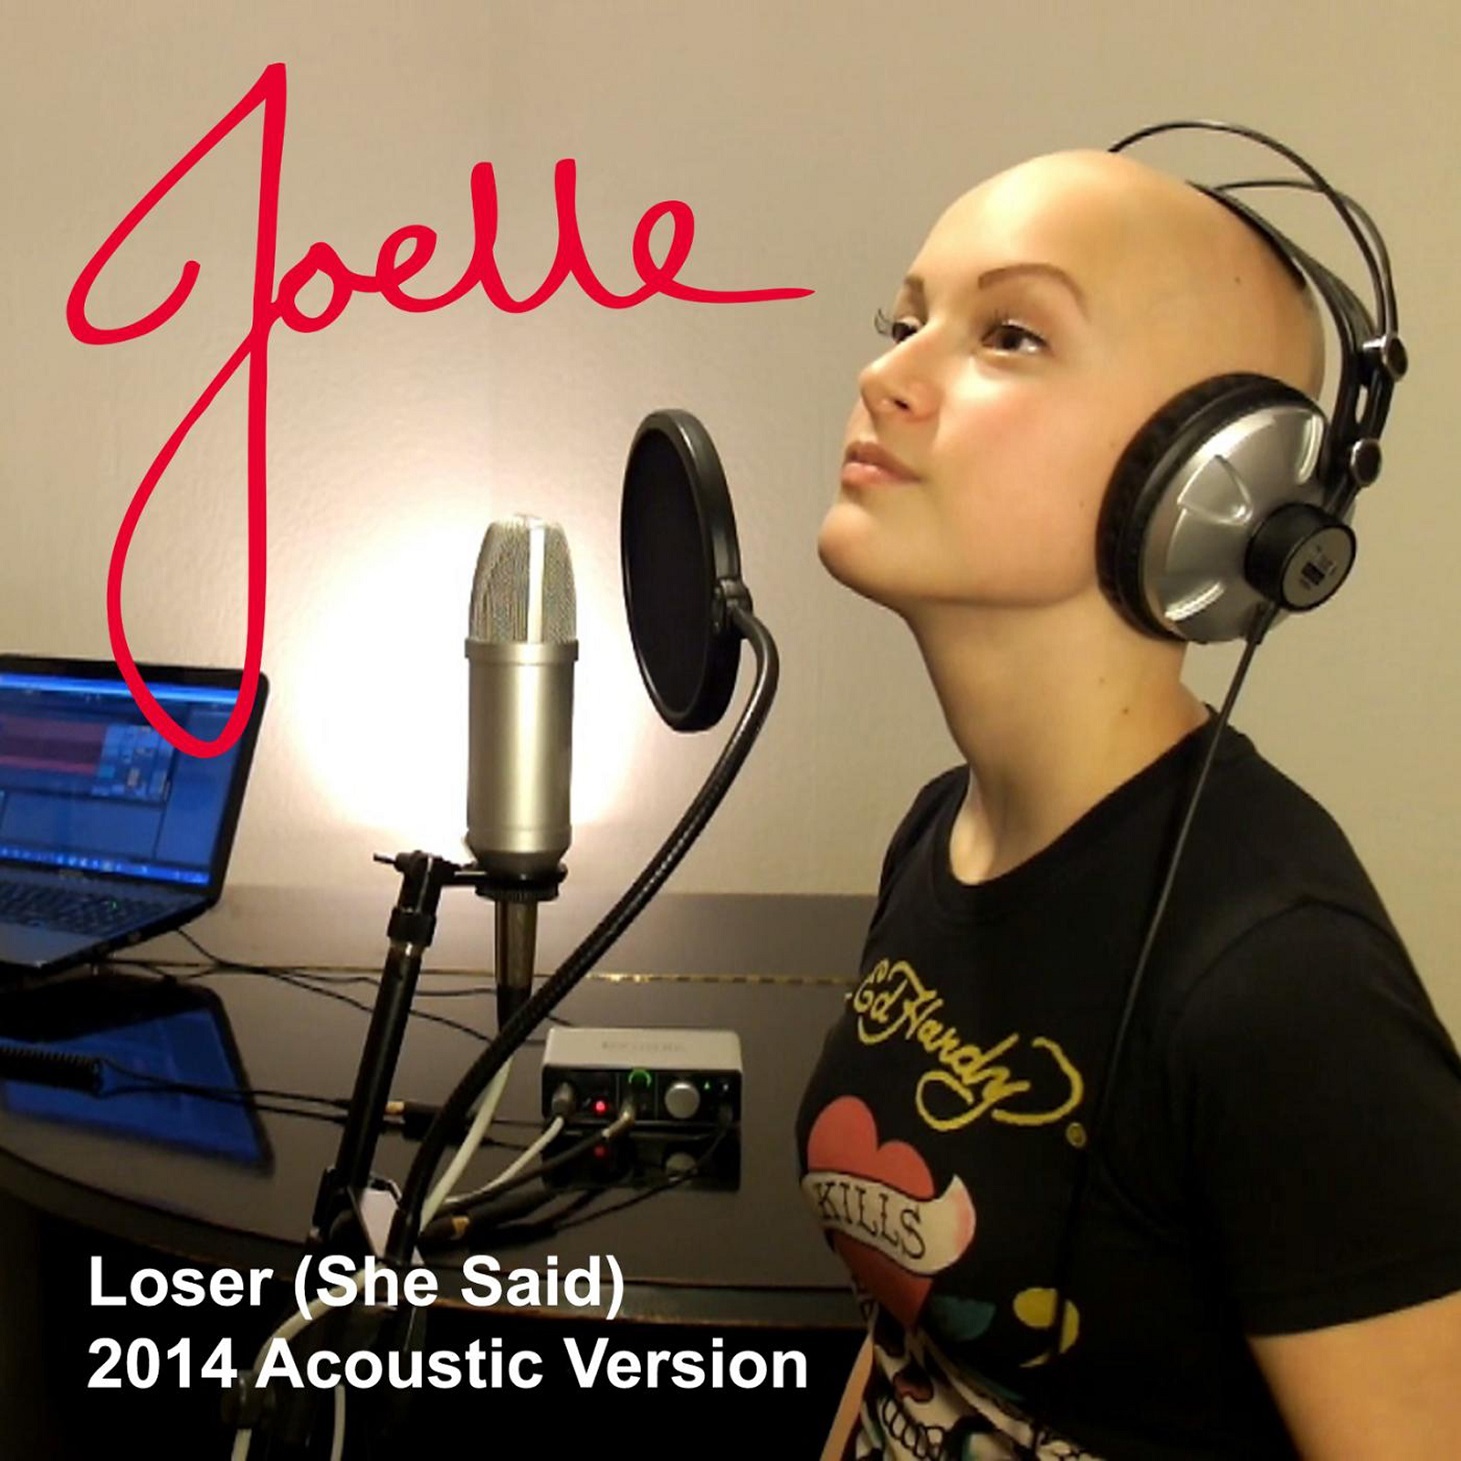 Loser (She Said) [2014 Acoustic Version] MP3